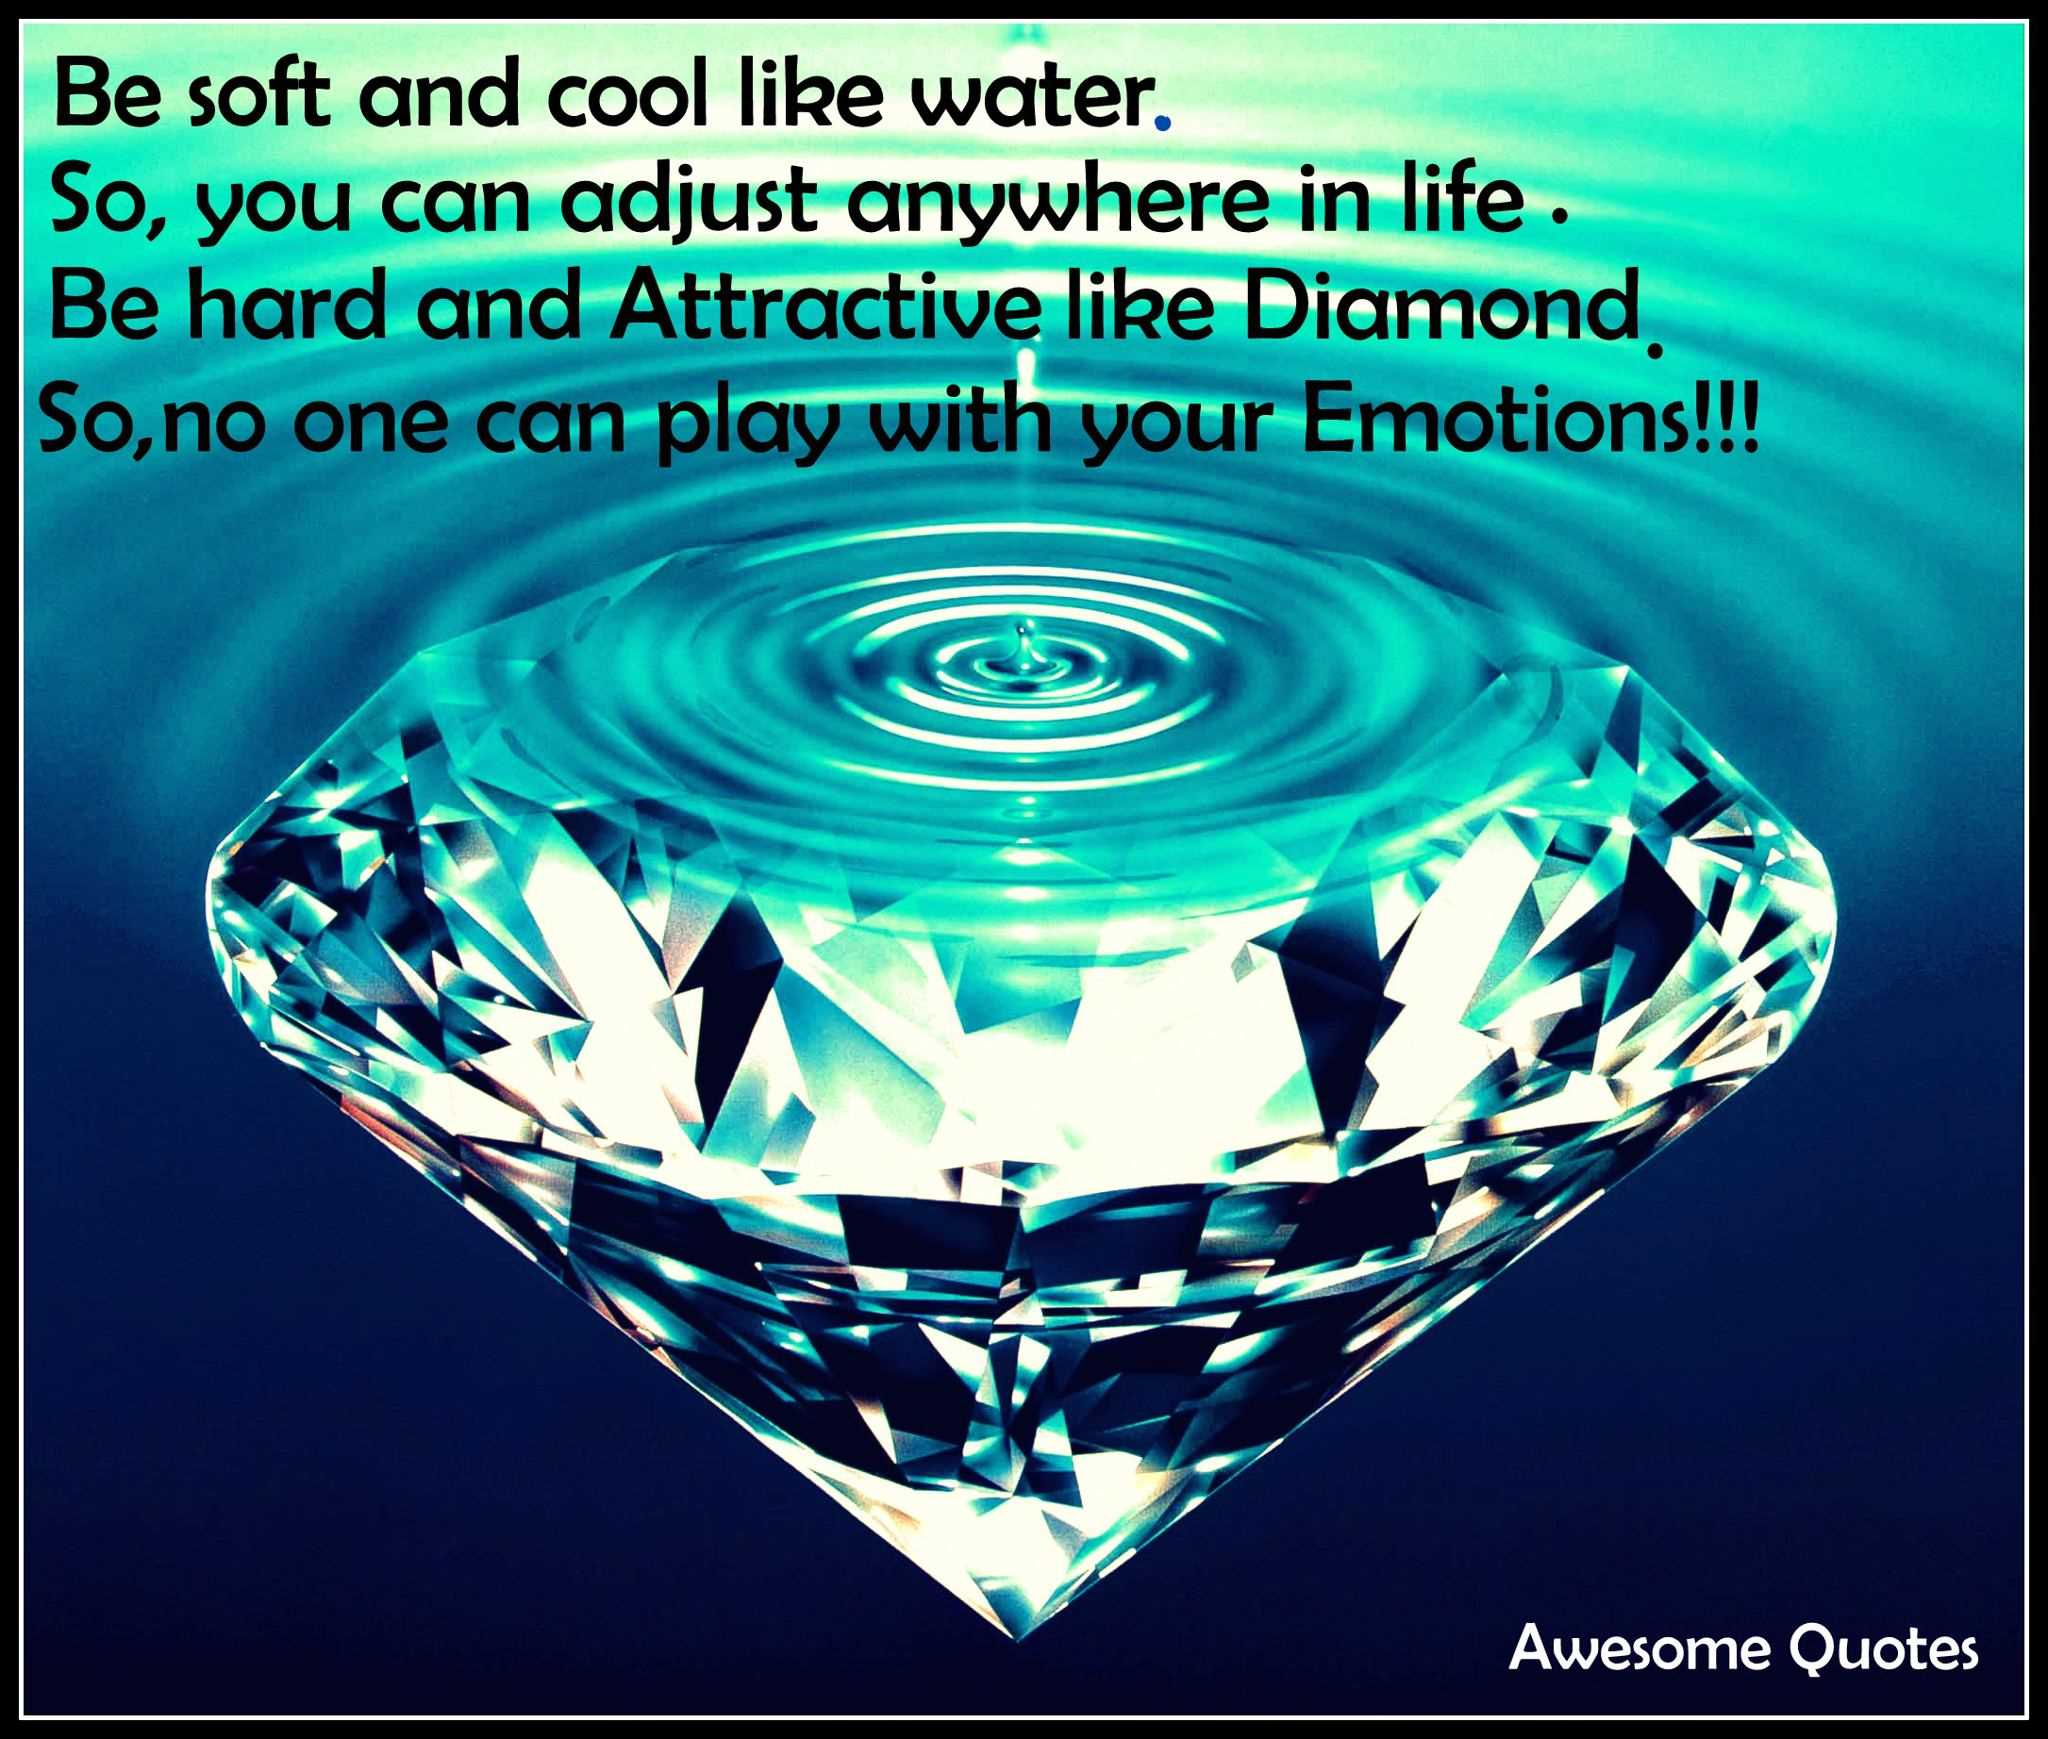 Quotes About Water: Quotes About Life And Water. QuotesGram